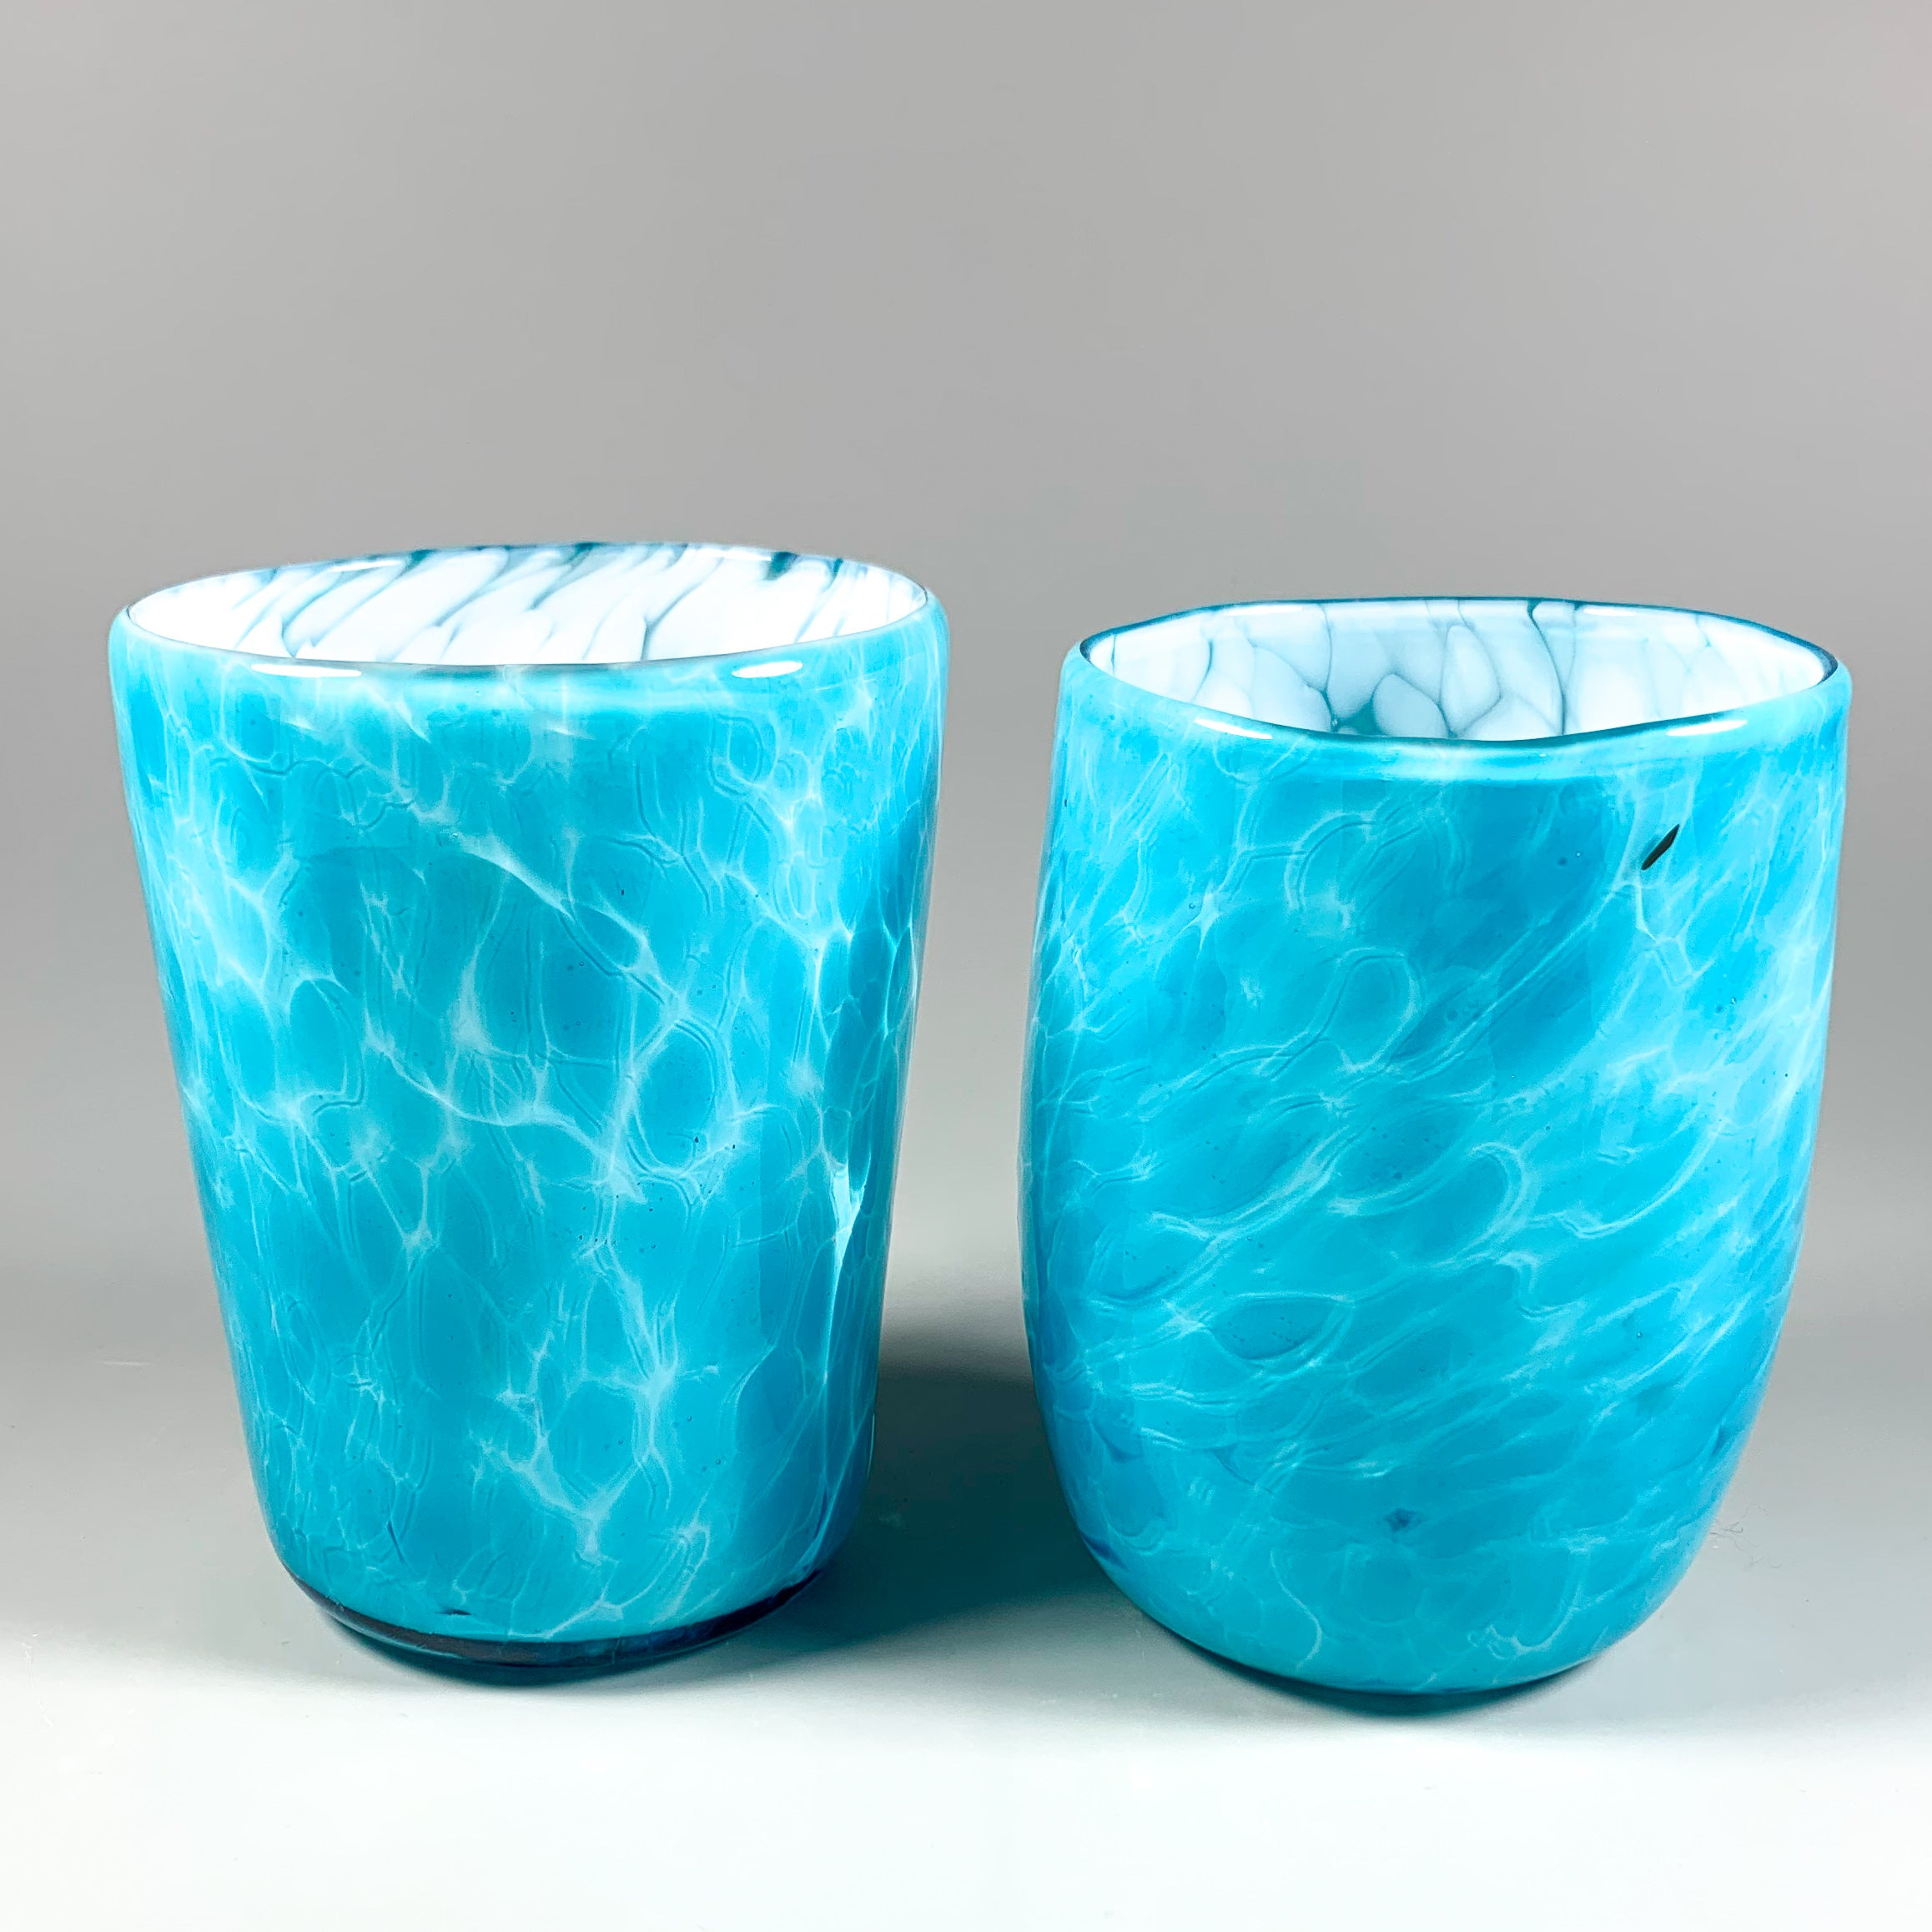 Cheerful Cups: Aqua